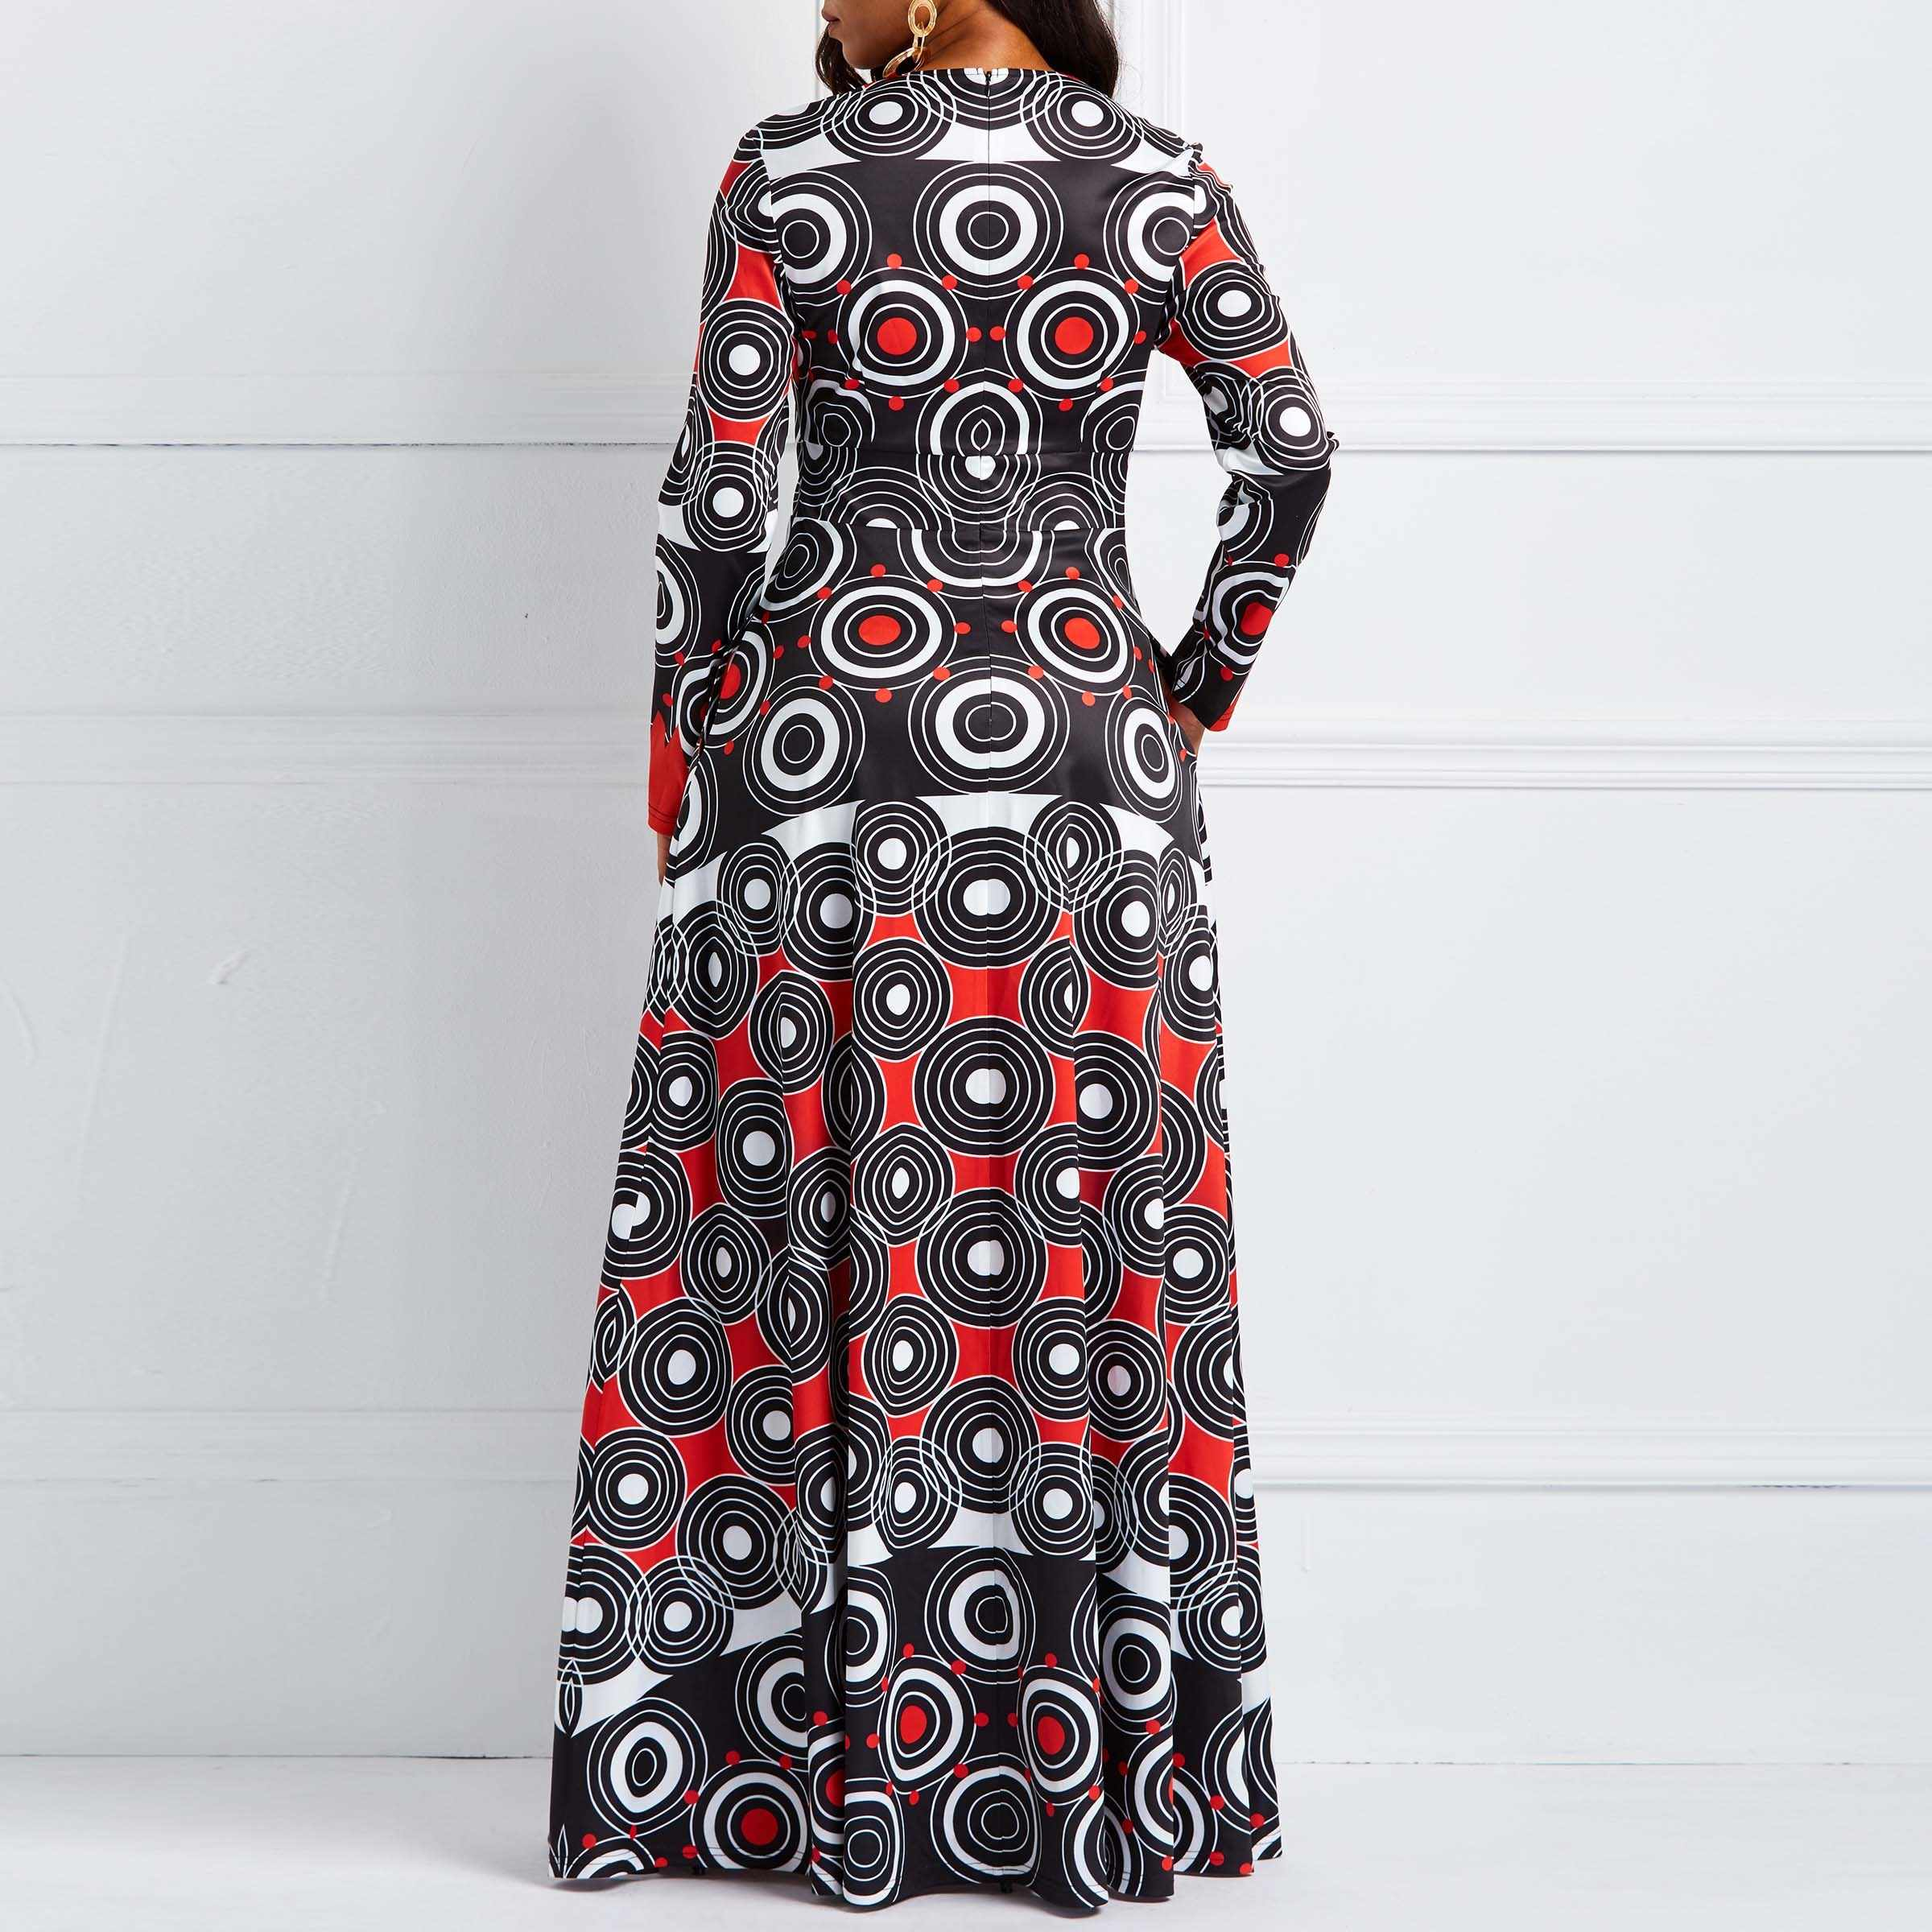 bcc2bad79fd5c Clocolor African Dresses for Women Vintage Polka Dots Print Plus Size  Autumn Winter Long Sleeve Tunic Ladies Maxi Long Dress New